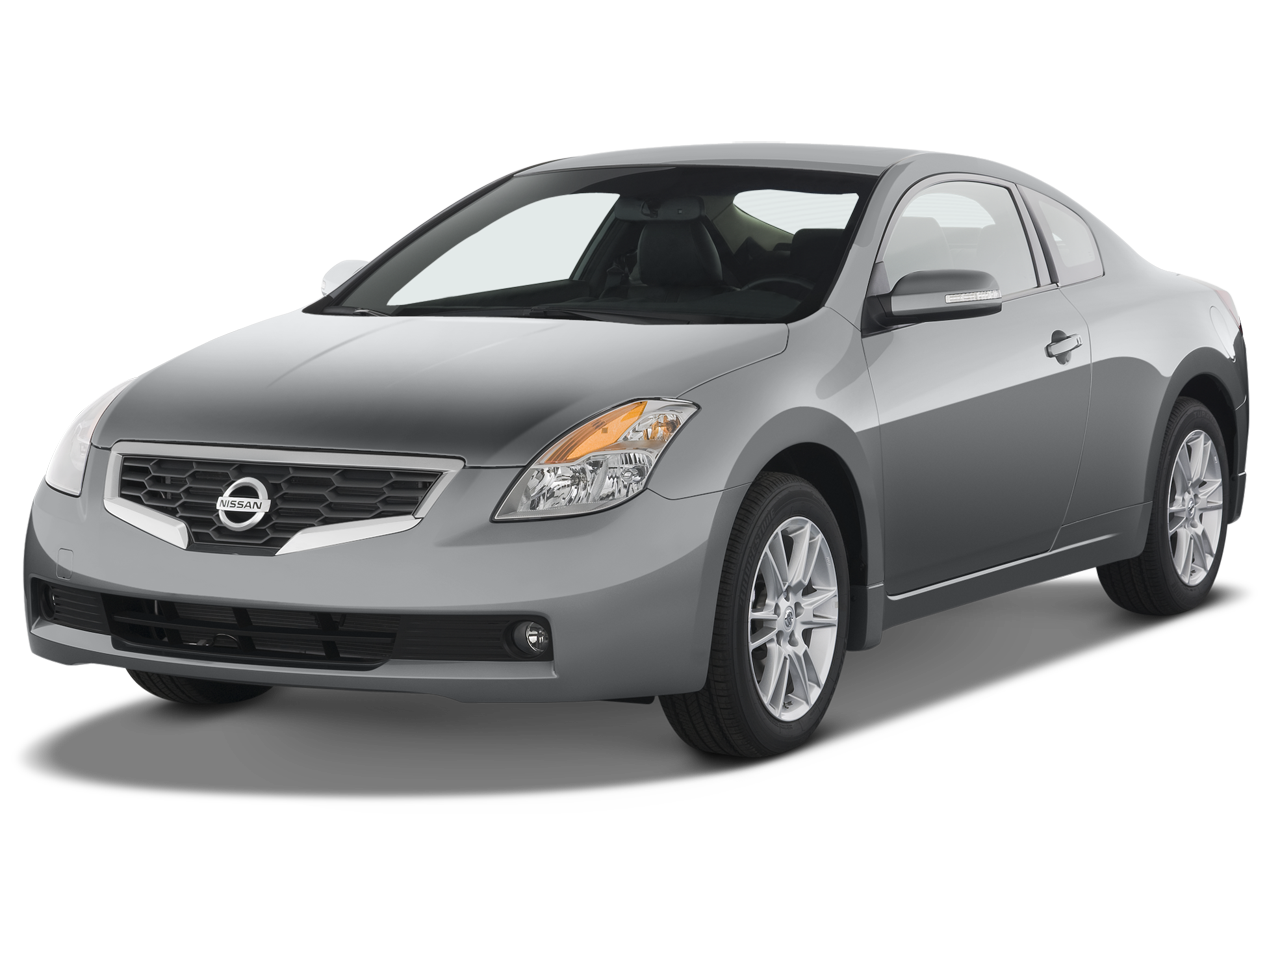 2009 nissan altima hybrid nissan hybrid sedan review. Black Bedroom Furniture Sets. Home Design Ideas